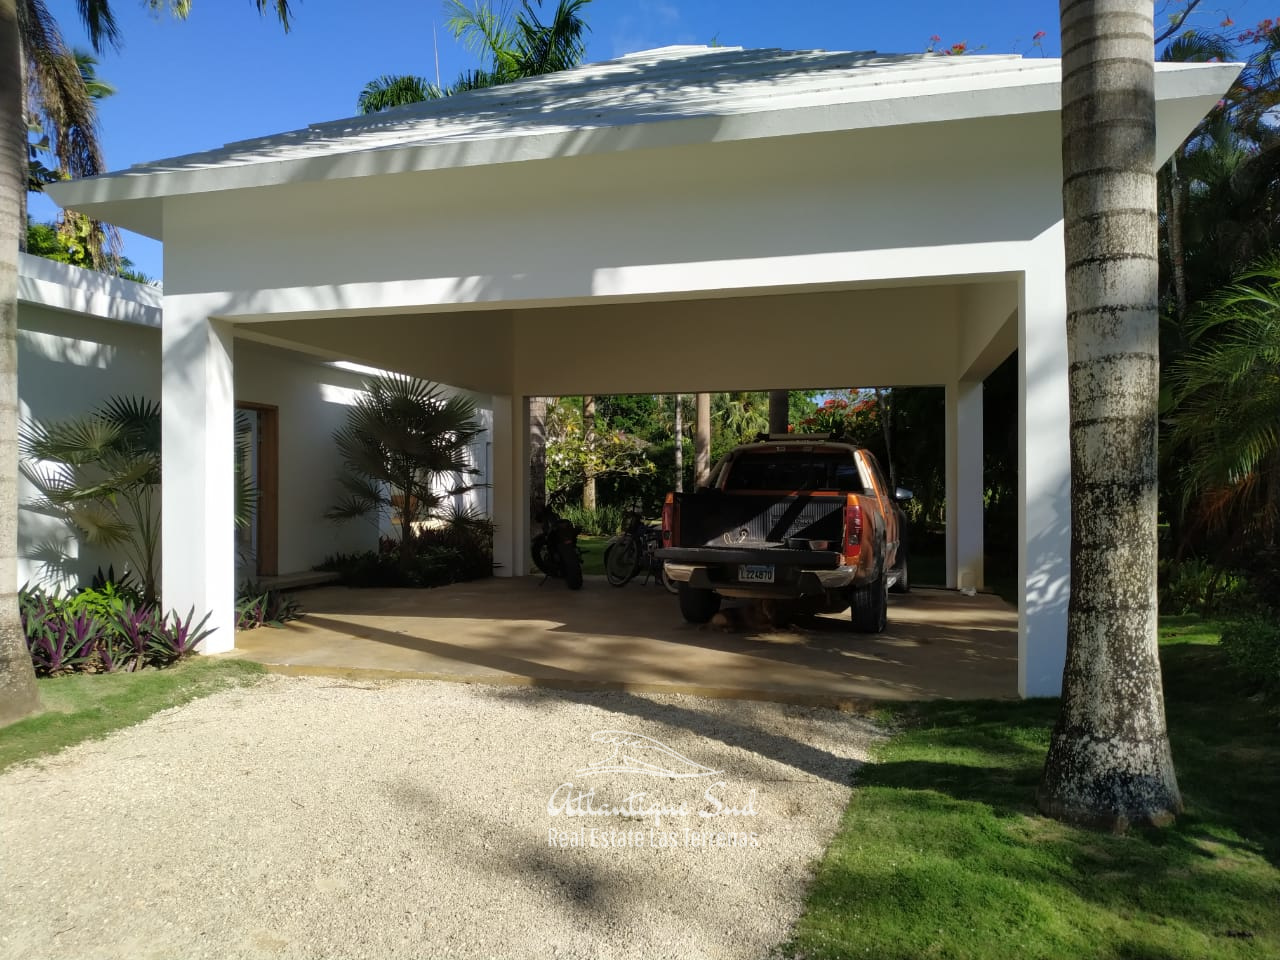 Parking, villa for sale las terrenas.jpeg